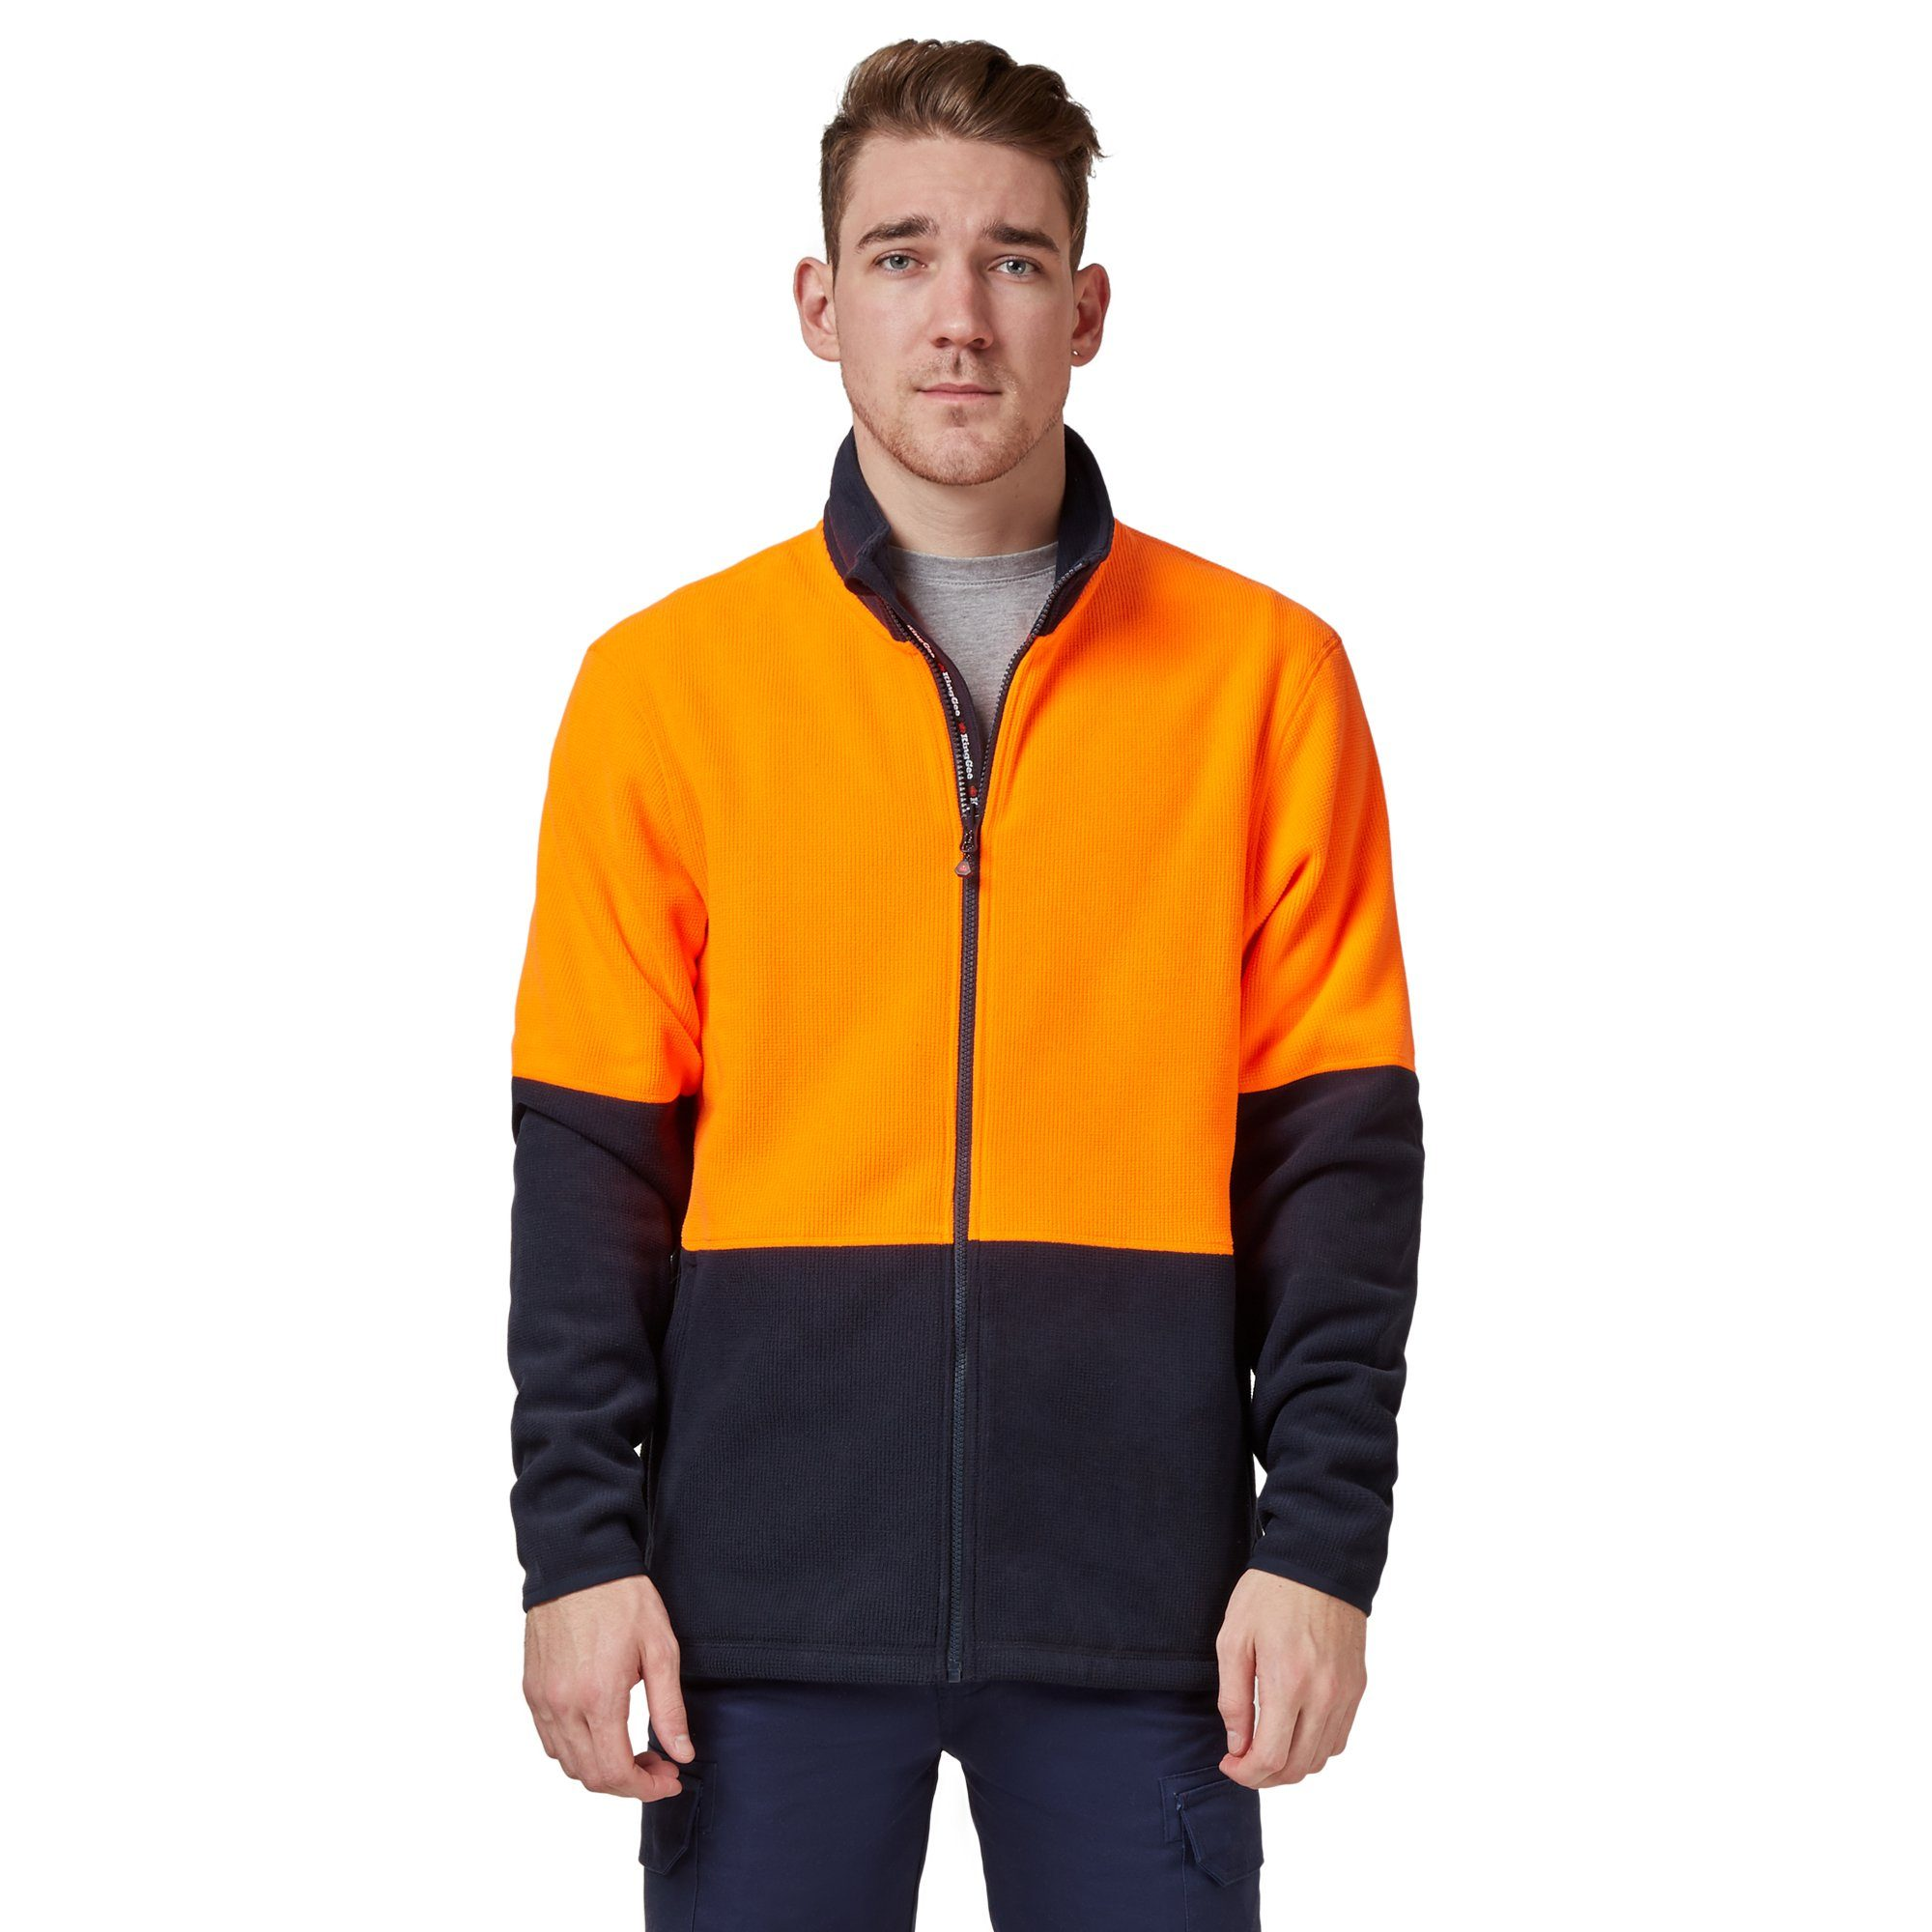 King Gee Full Zip Spliced Hi Vis Fleece - Orange/Navy Workwear Isbister & Co Wholesale